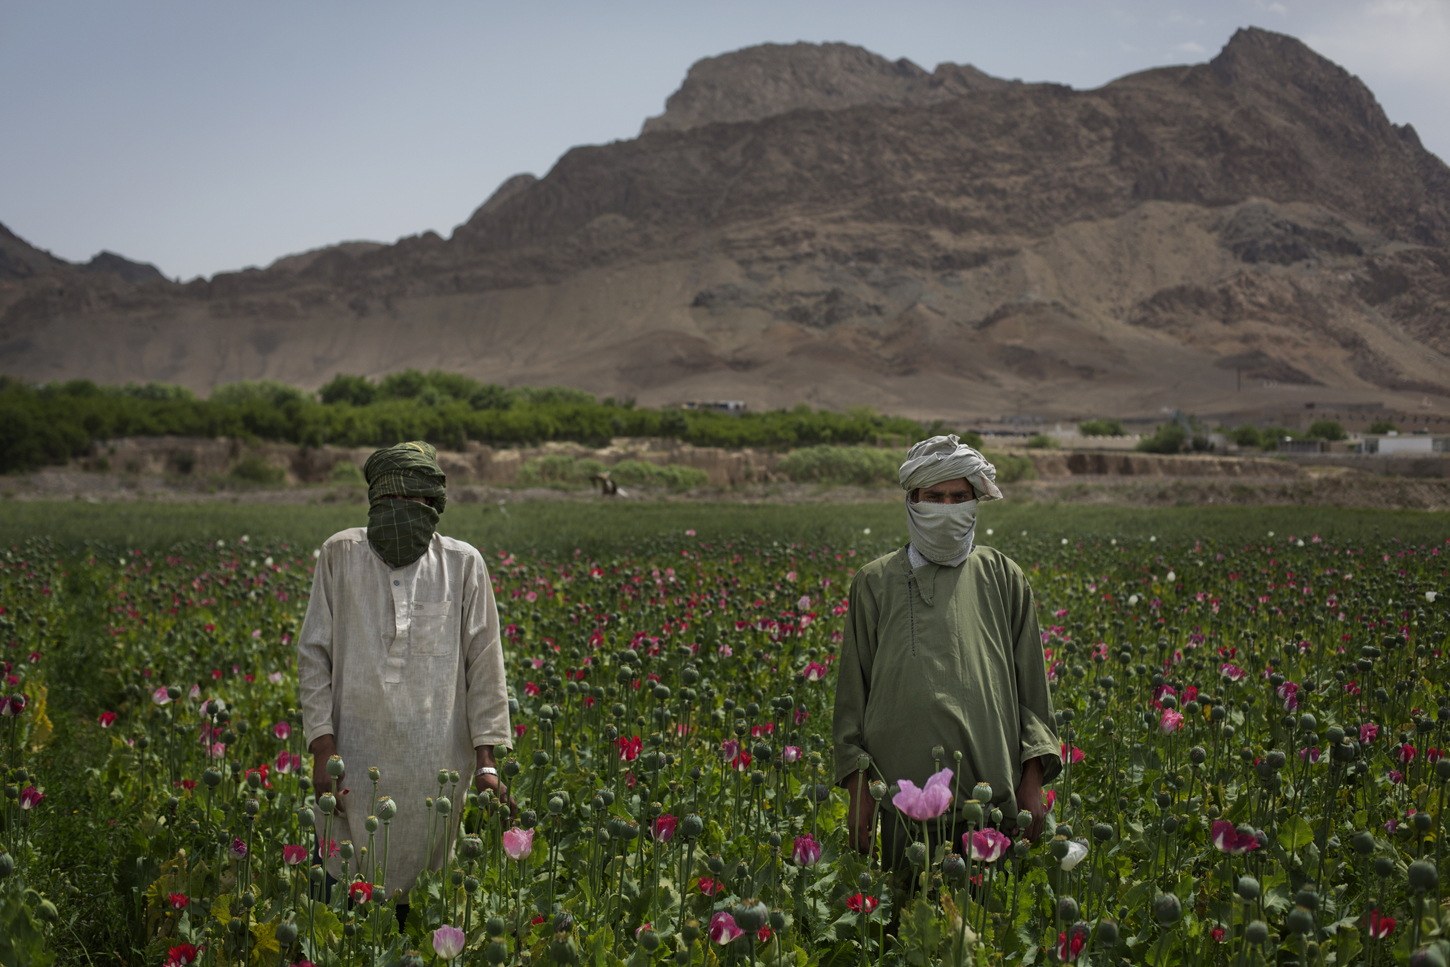 Afghanistan: The Making of a Narco State